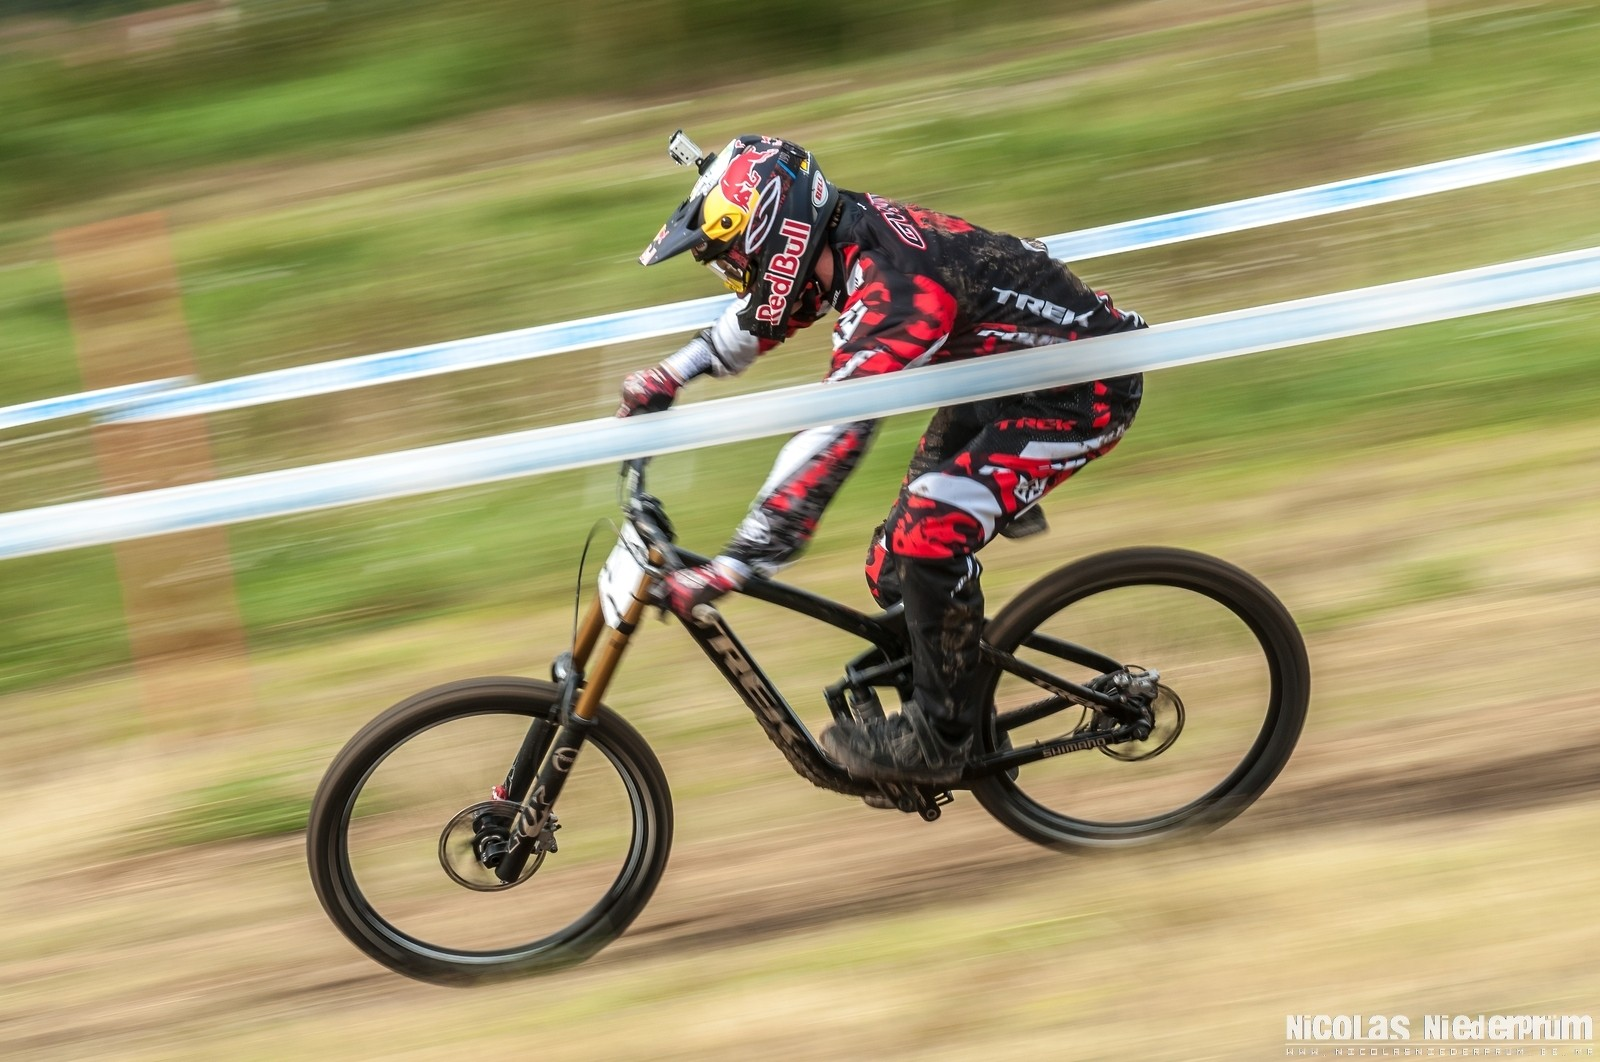 Aaron Gwin @Hafjell (Norway) Downhill World Cup 2012 - born_to_ride - Mountain Biking Pictures - Vital MTB